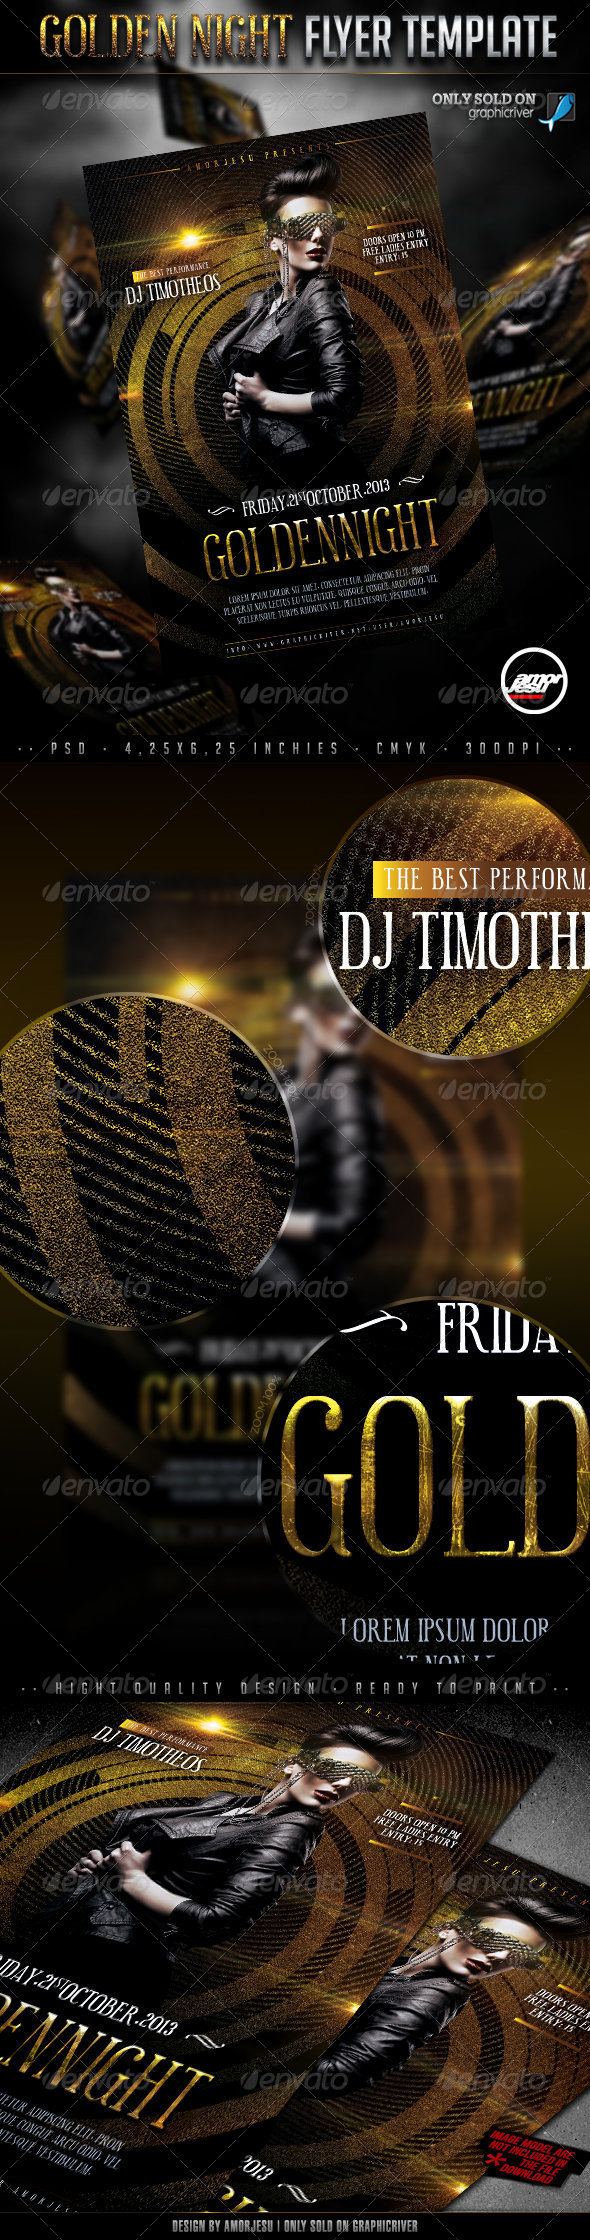 Golden Night Flyer Template - Clubs & Parties Events